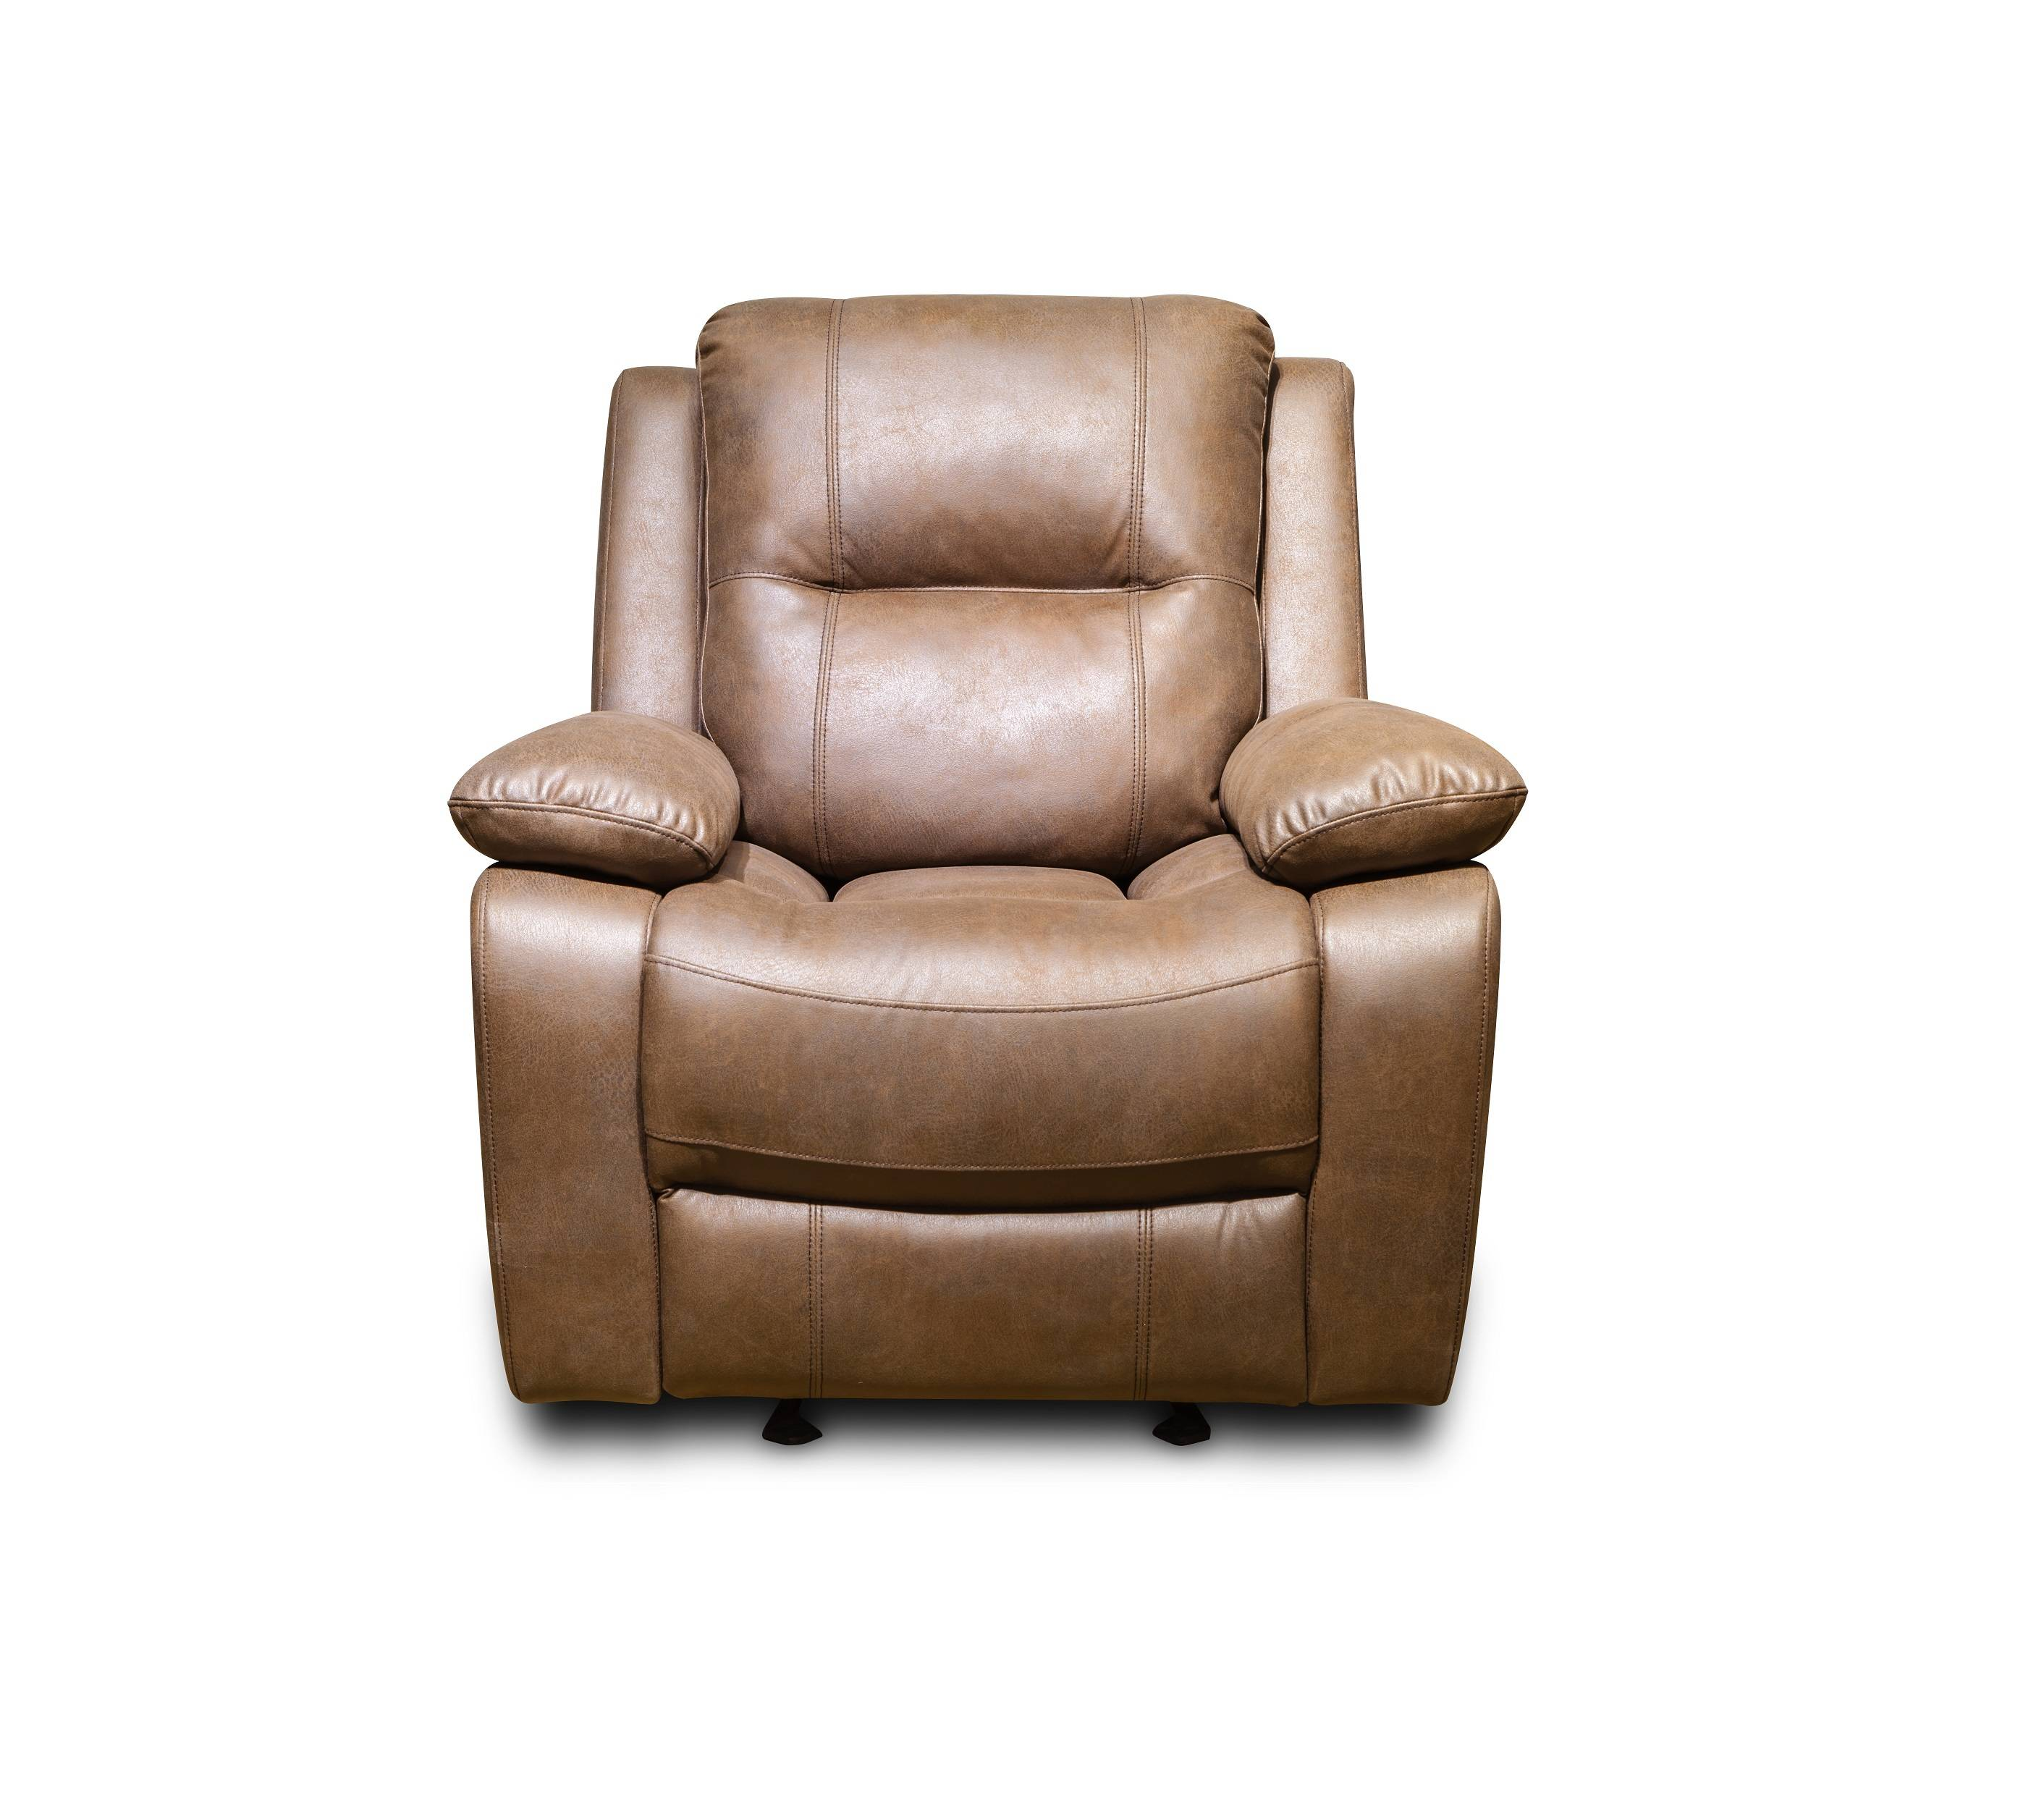 Modern comfortable high quality leather single recliner sofa chair Featured Image